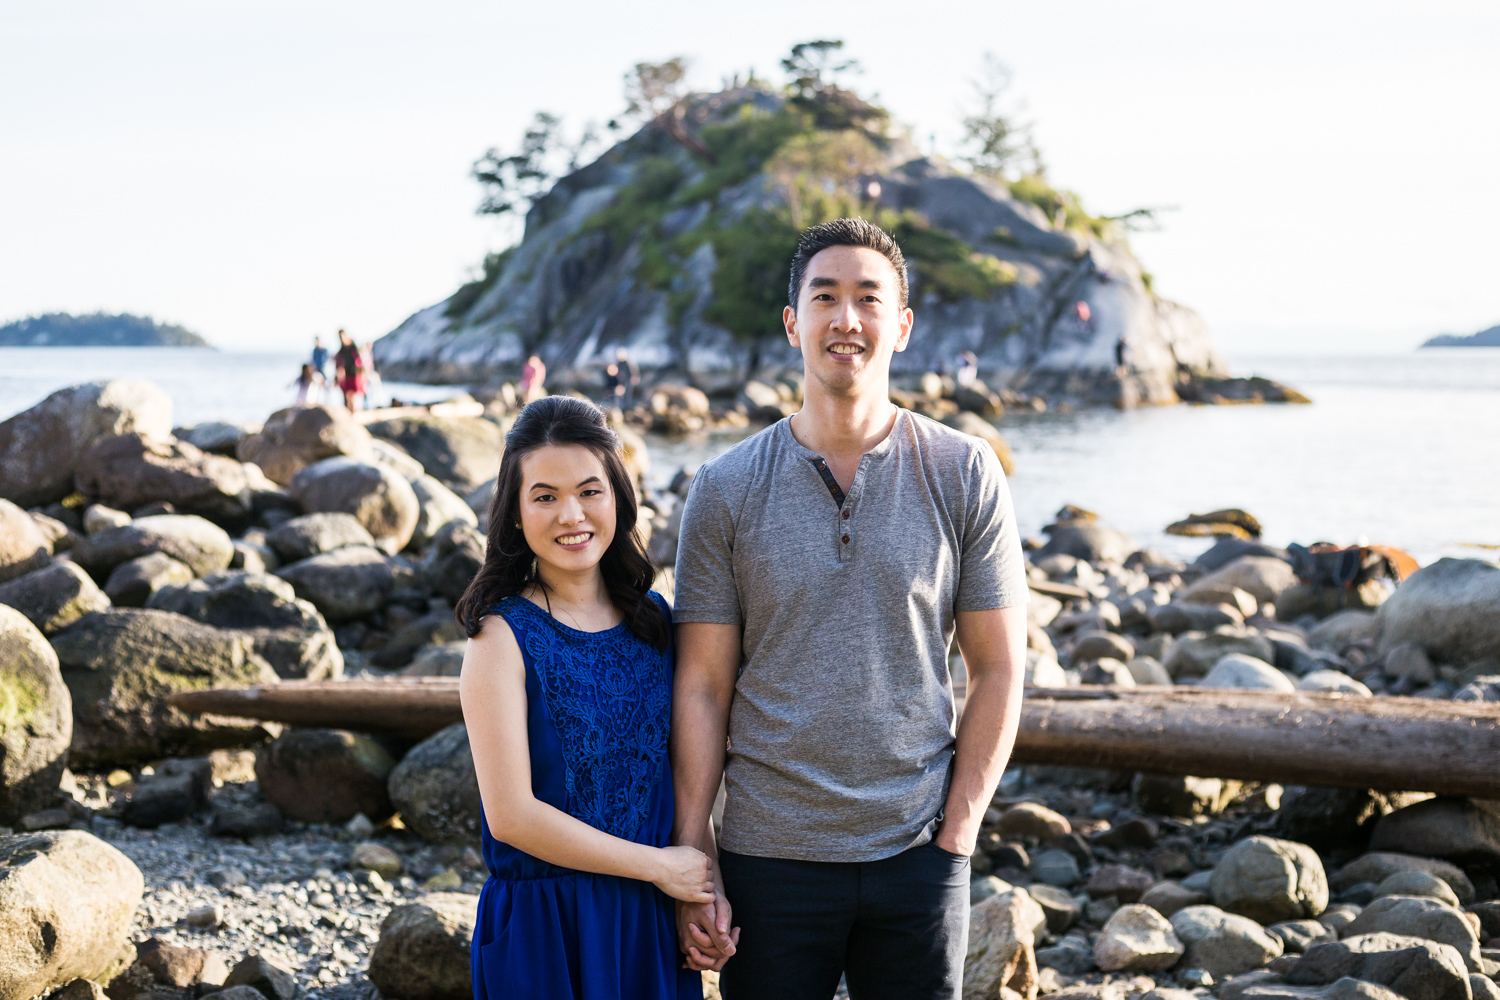 whytecliff park portraits (2 of 2)